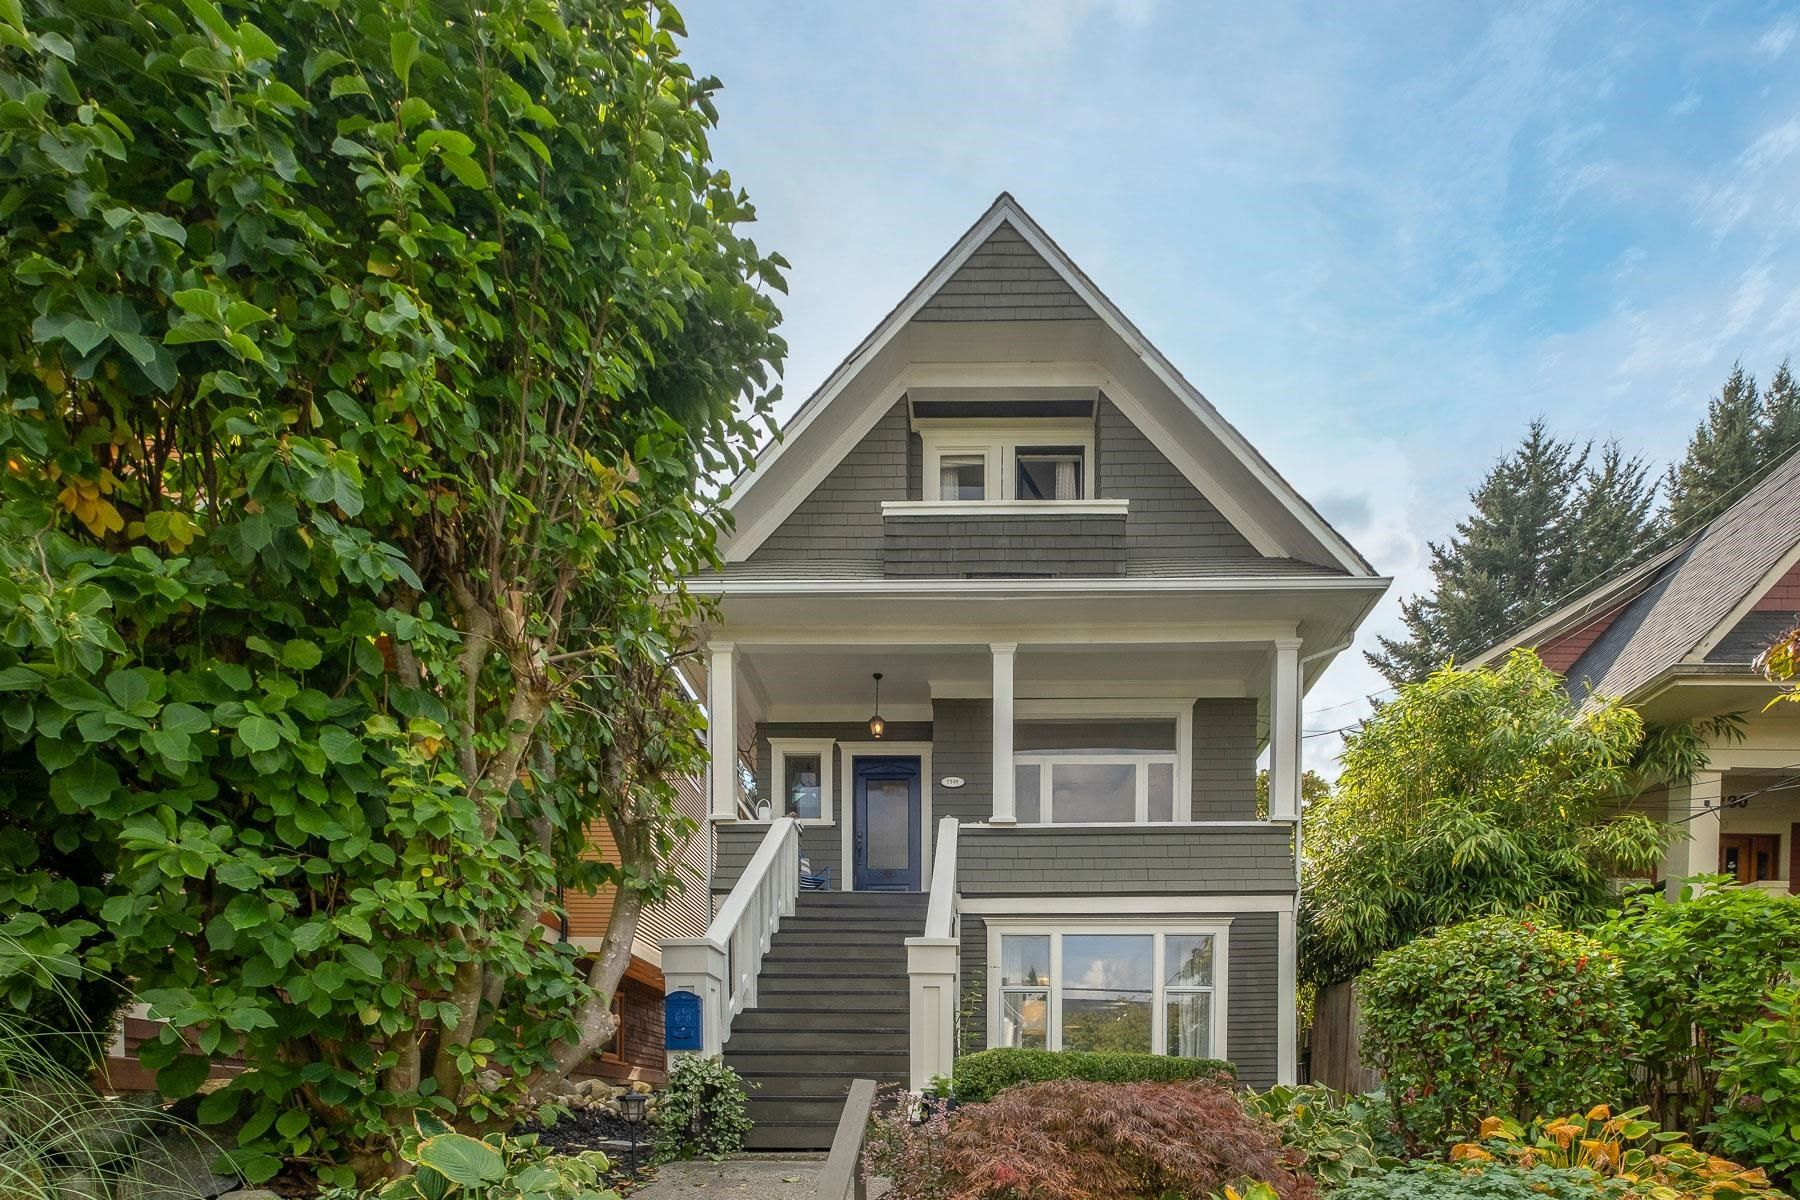 Main Photo: 1240 E 13TH Avenue in Vancouver: Mount Pleasant VE House for sale (Vancouver East)  : MLS®# R2625462